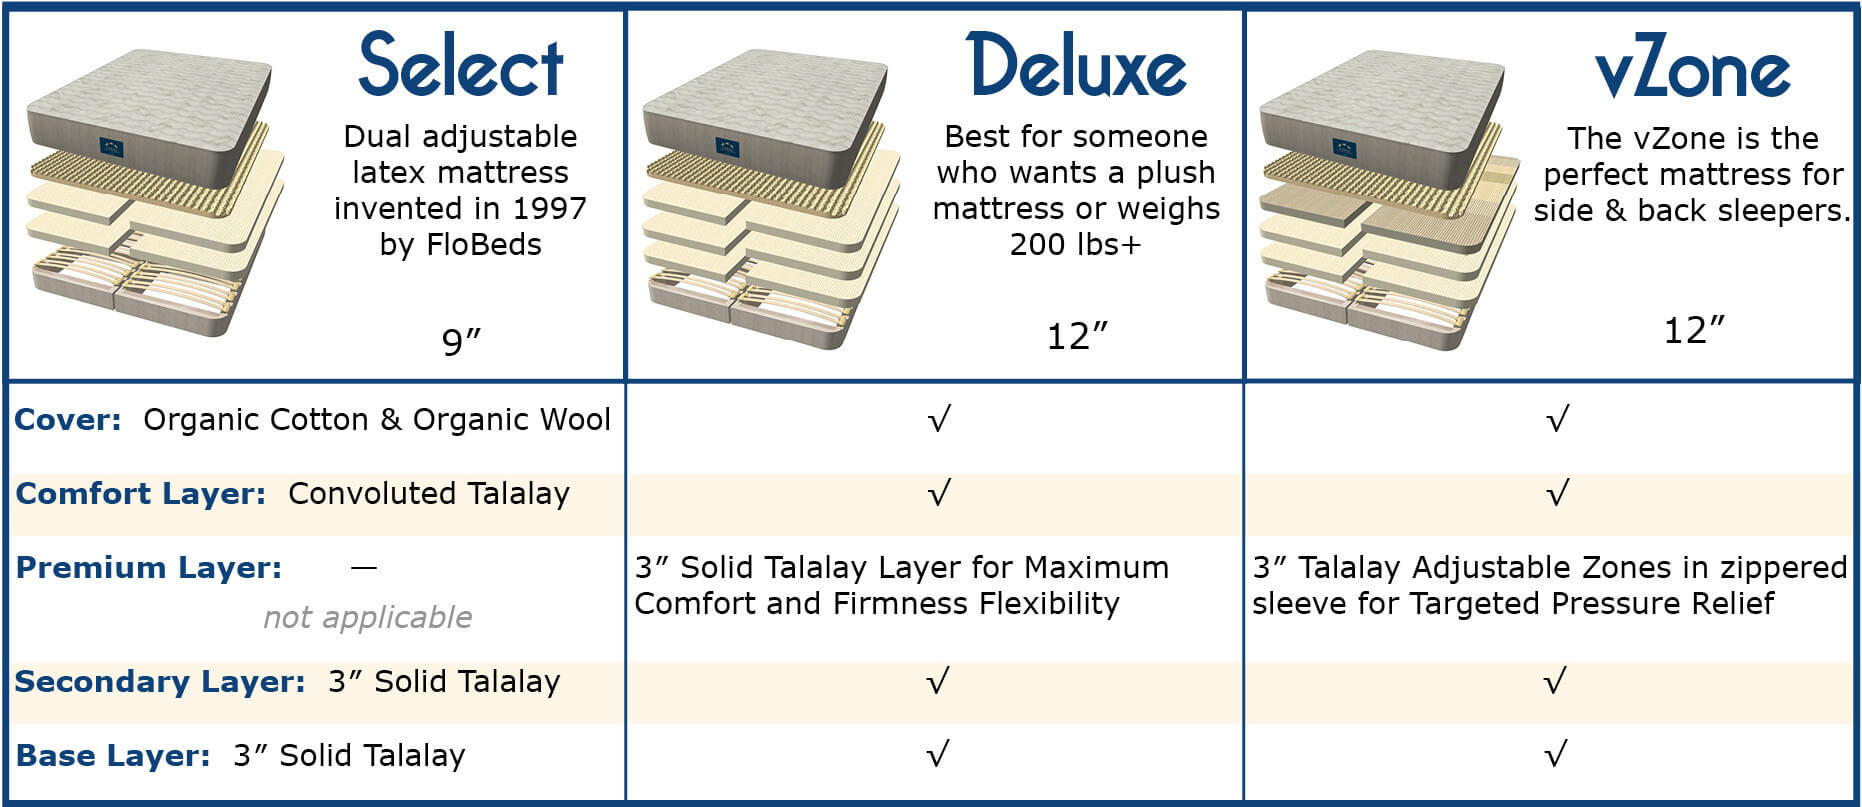 Dual adjustable latex mattress FloBeds invented in 1997. Best for someone who wants a plush mattress or weighs 200 lbs+. The vZone is the perfect mattress for side & back sleepers. Cover: Organic Cotton & Organic Wool. Comfort Layer: Convoluted Talalay. Secondary Layer: 3″ Solid Talalay. Base Layer: 3″ Solid Talalay. Premium Layer 3″ Solid Talalay Layer for Maximum Comfort and Firmness Flexibility or 3″ Talalay Adjustable Zones in zippered sleeve for Targeted Pressure Relief.